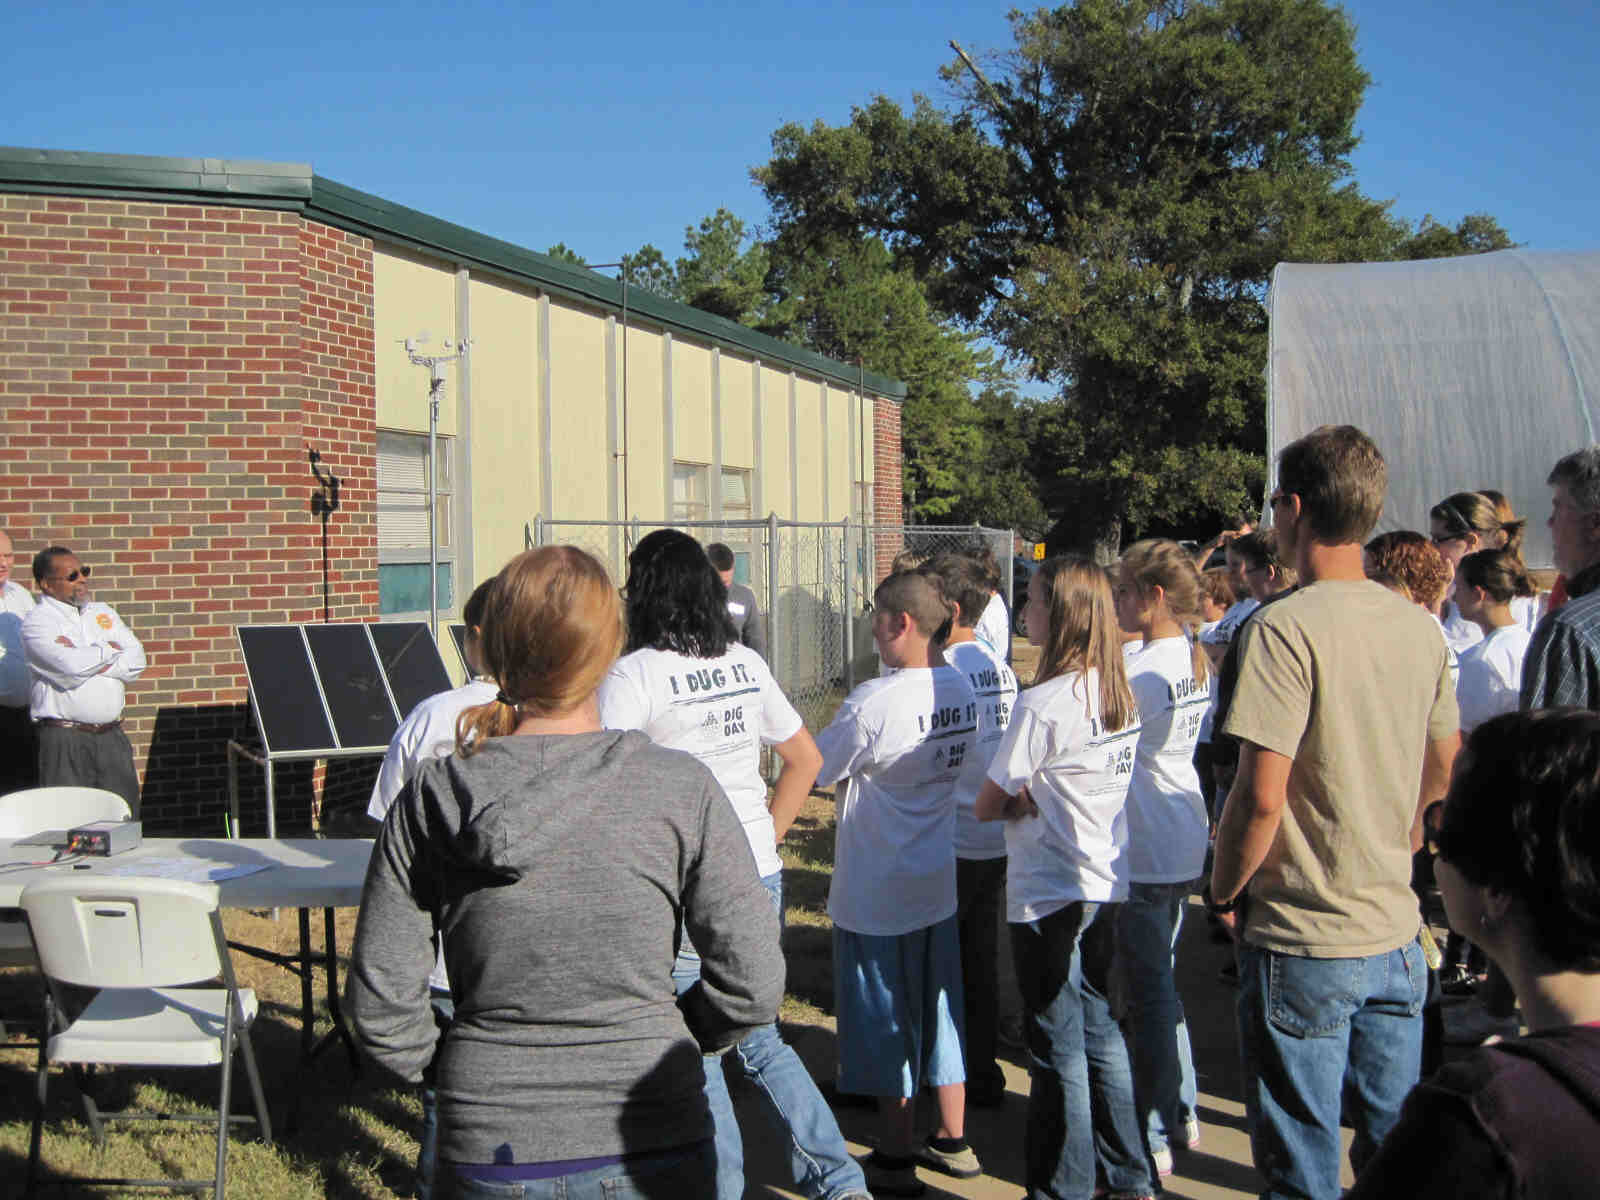 Walte Ellis a member of MAREH and expert in improving educational methods, discusses the importance of learning about technologies like solar energy and the underlying science with students.